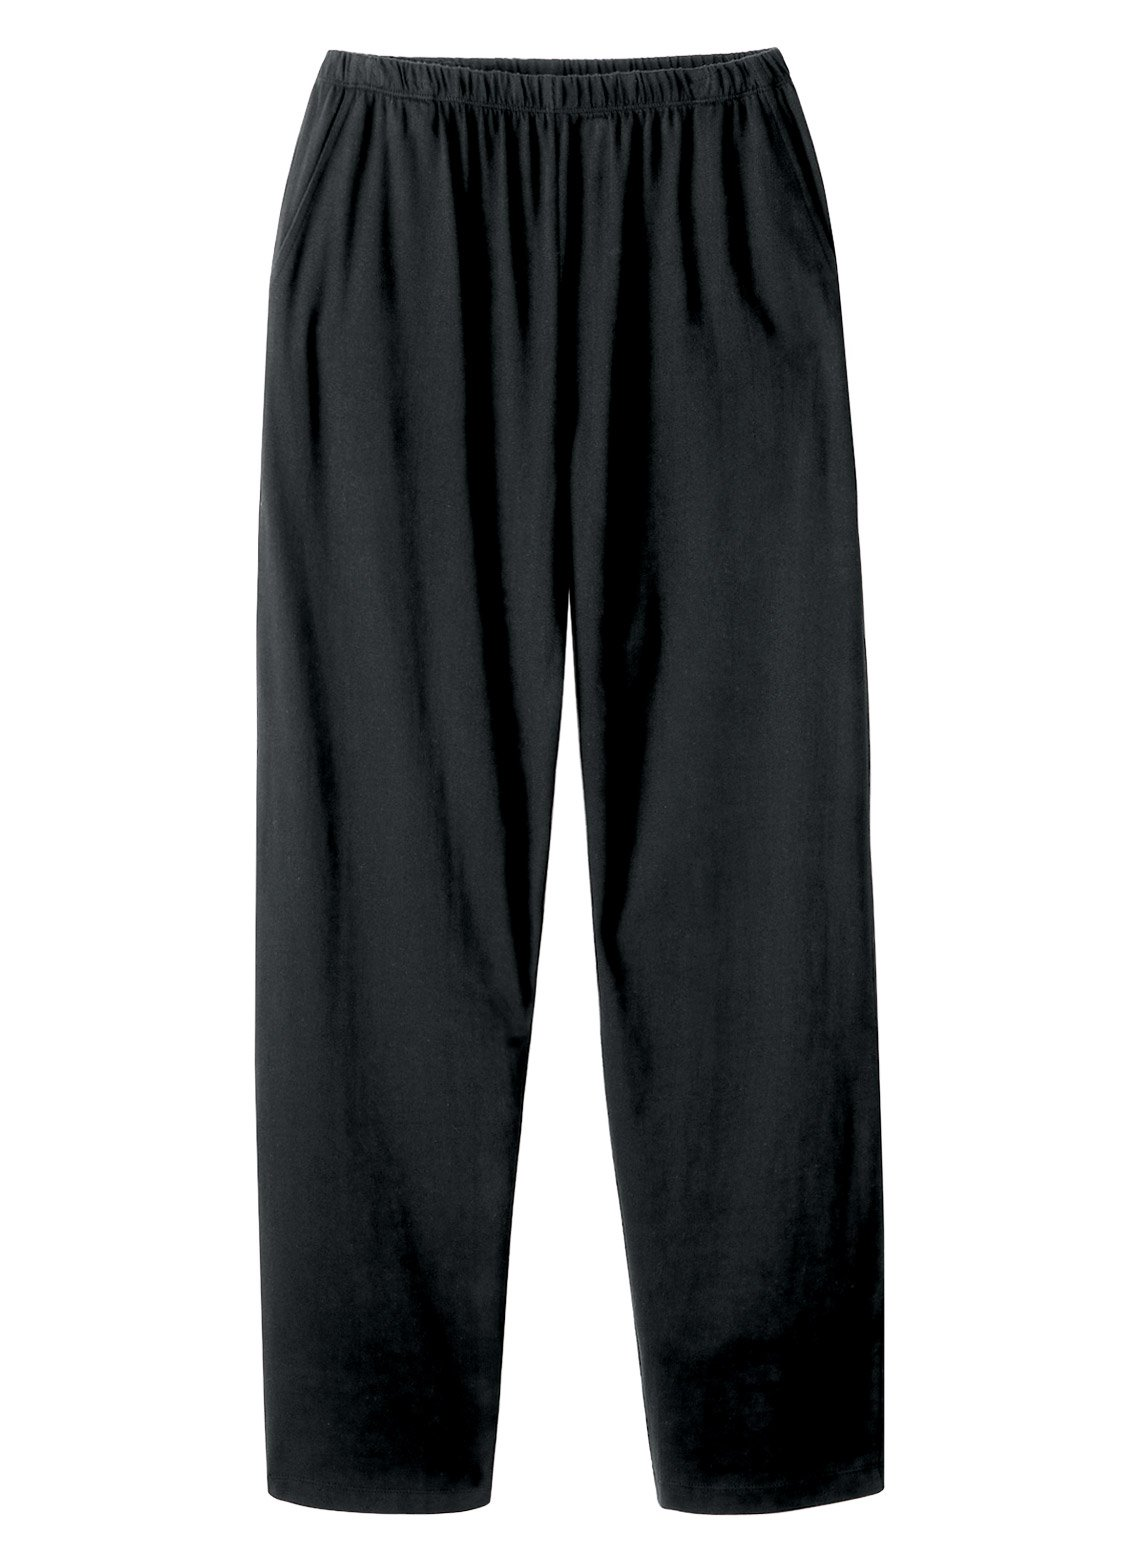 Carol Wright Gifts Essential Knit Pant, Color Black, Size Large, Black, Size Large